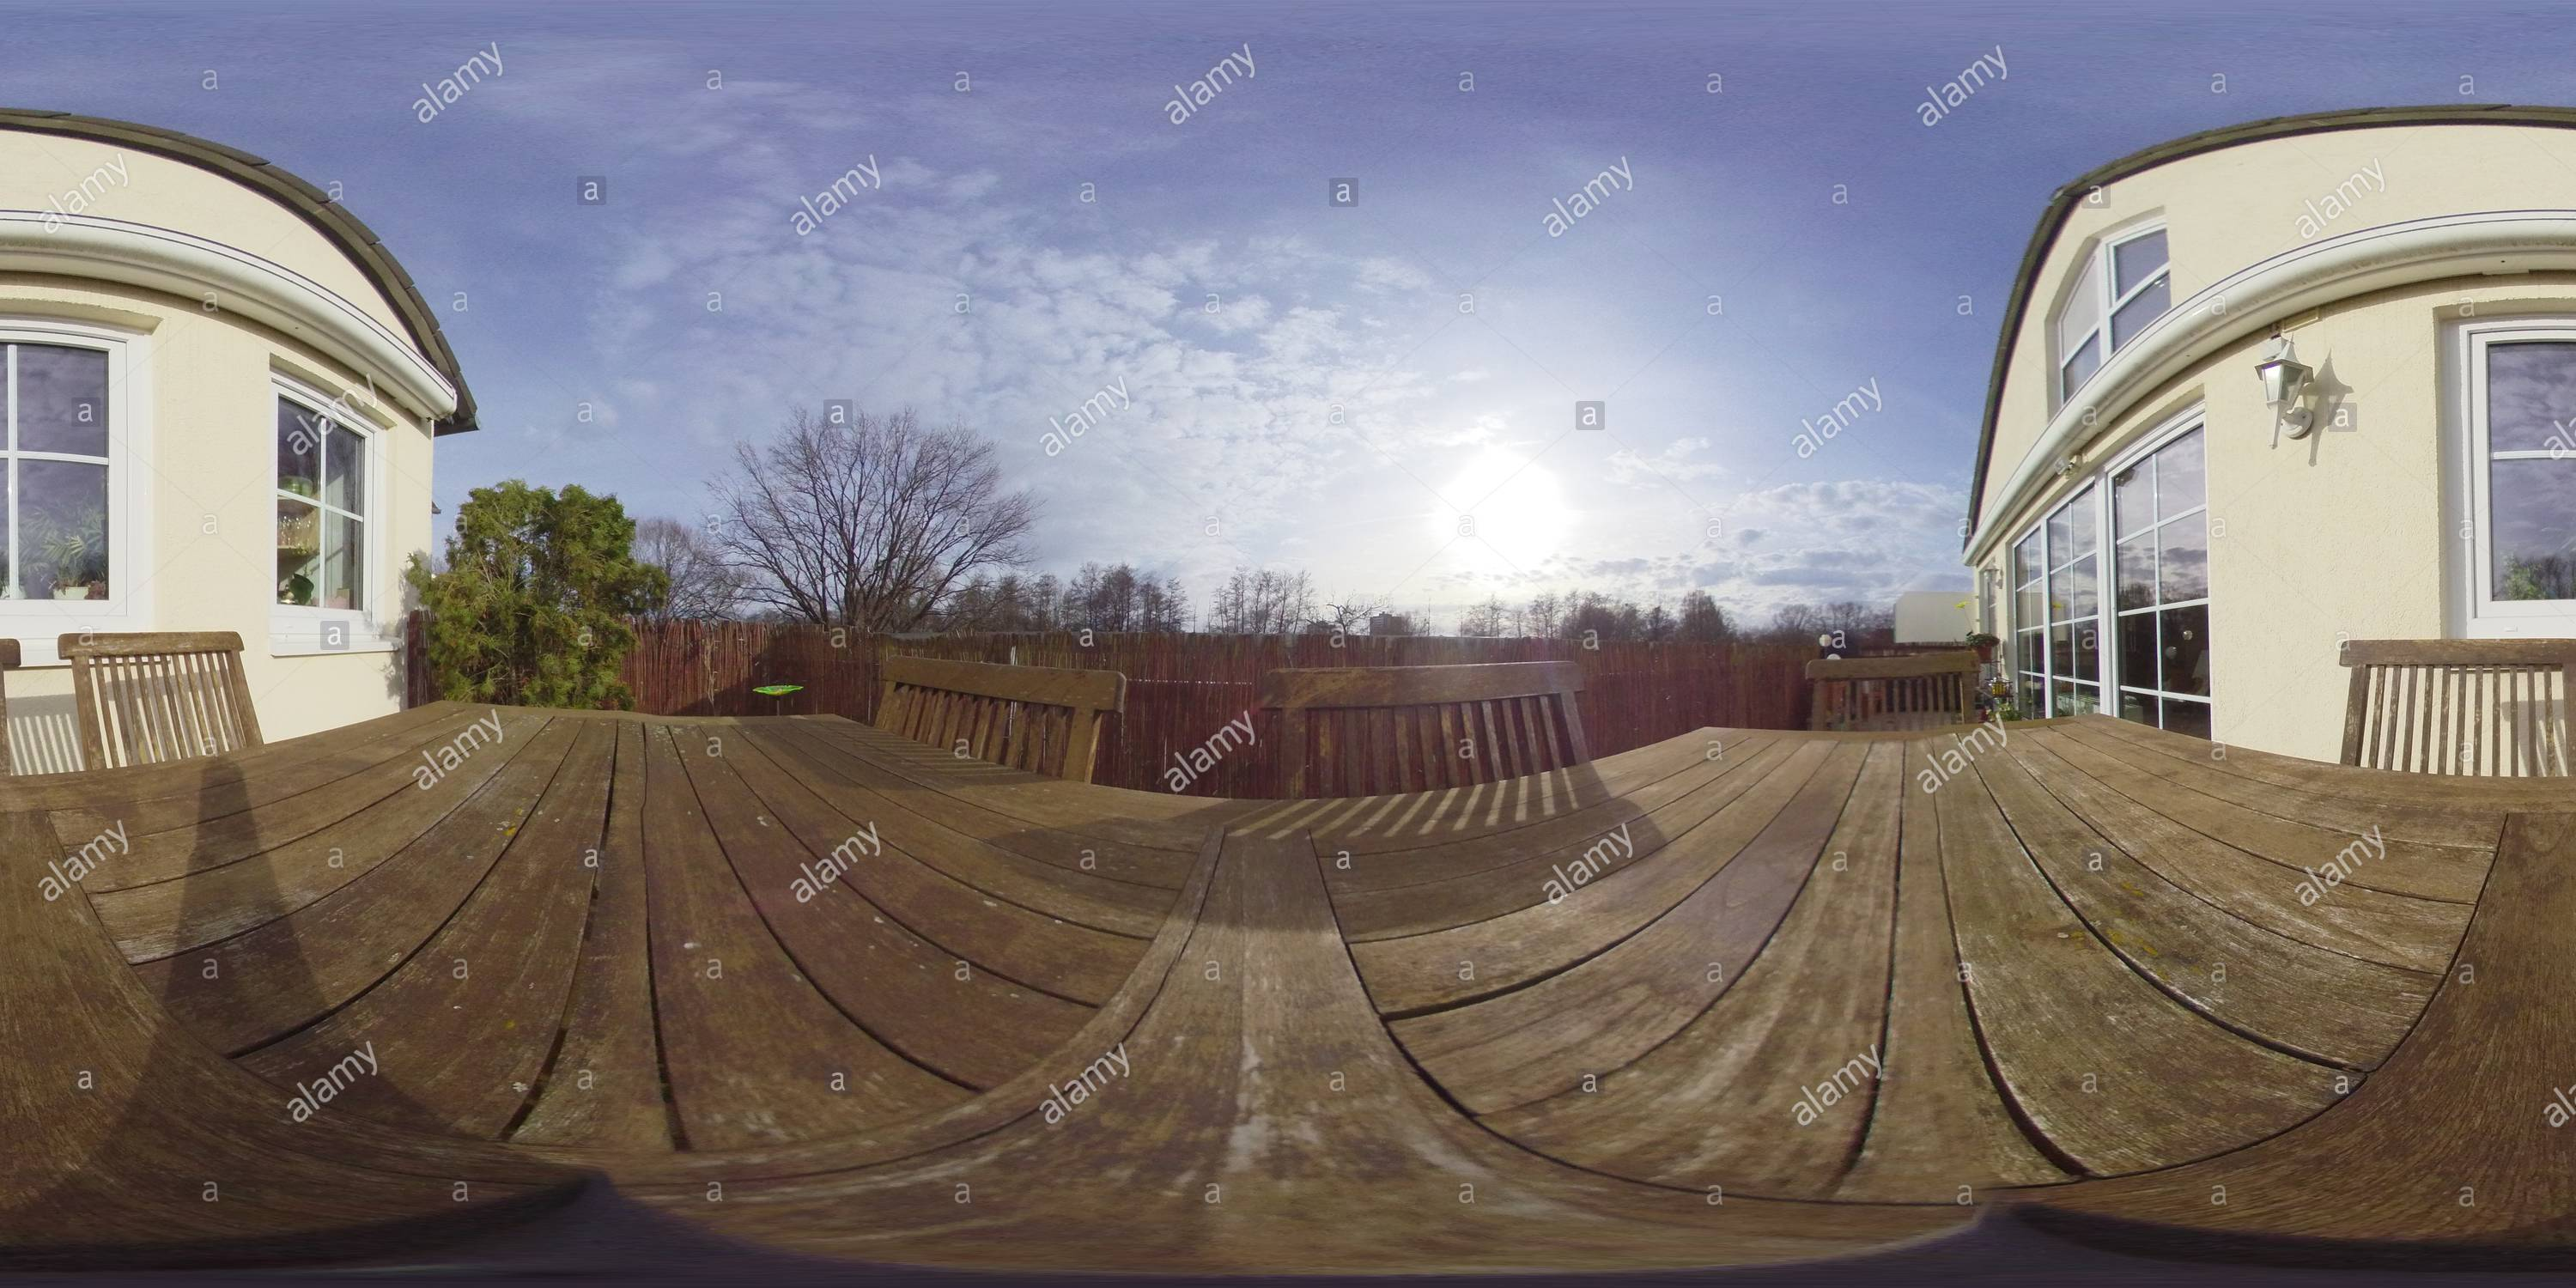 Test Insta360 One - Stock Image